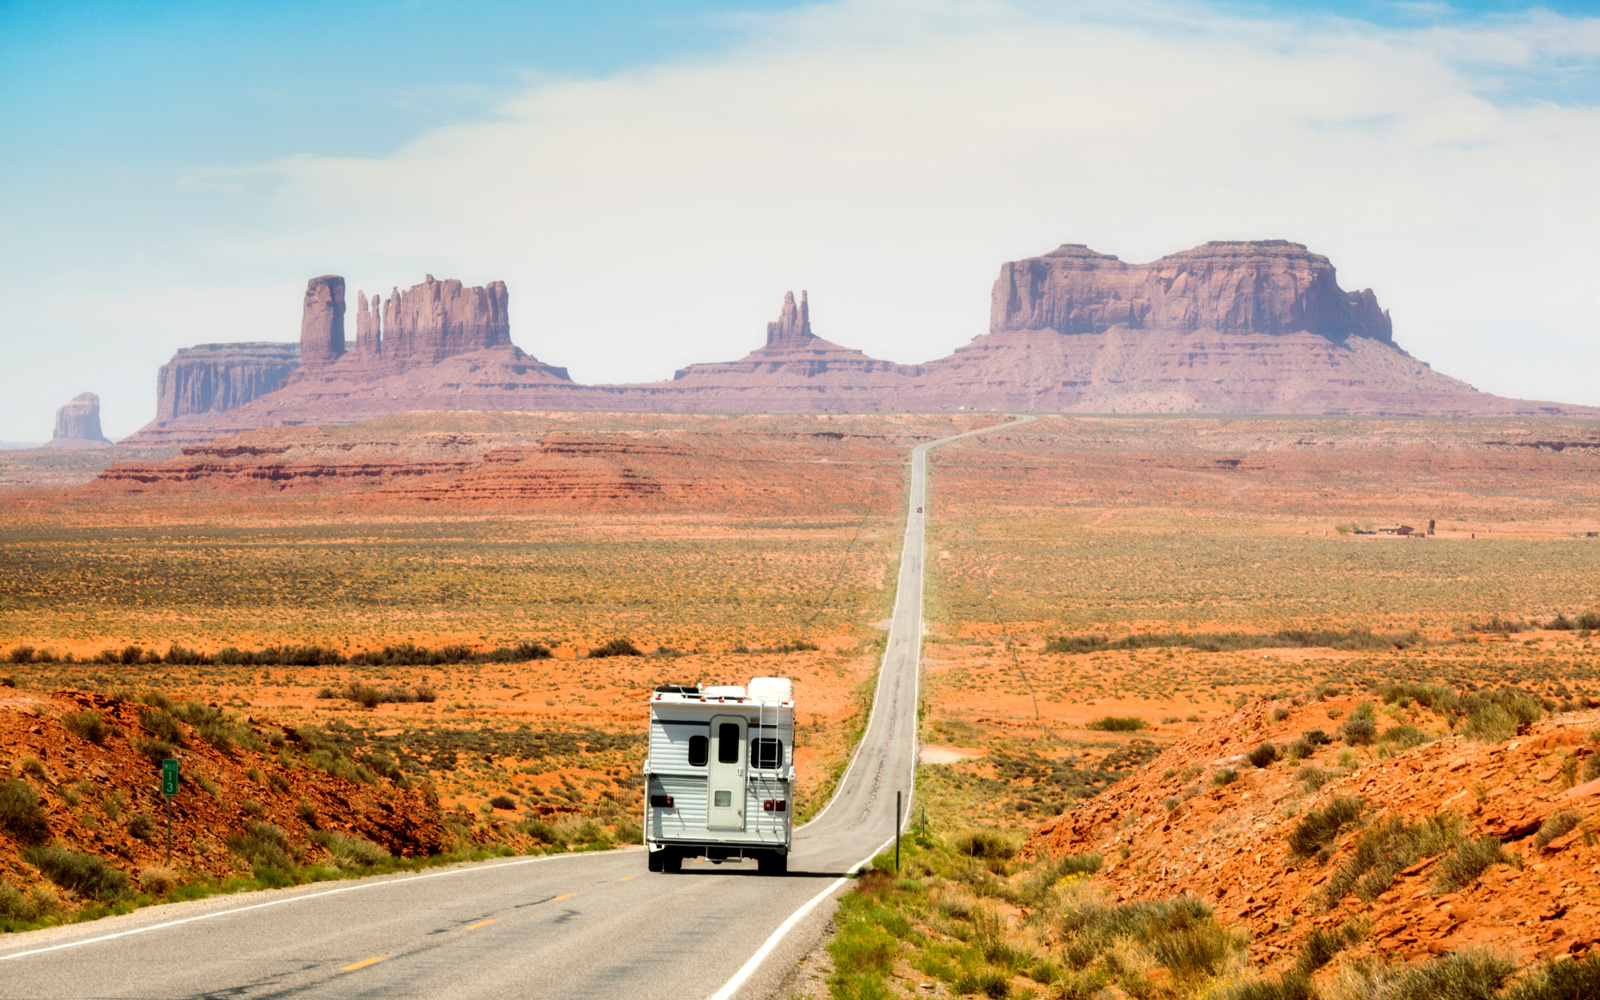 Road Trip through Monument Valley